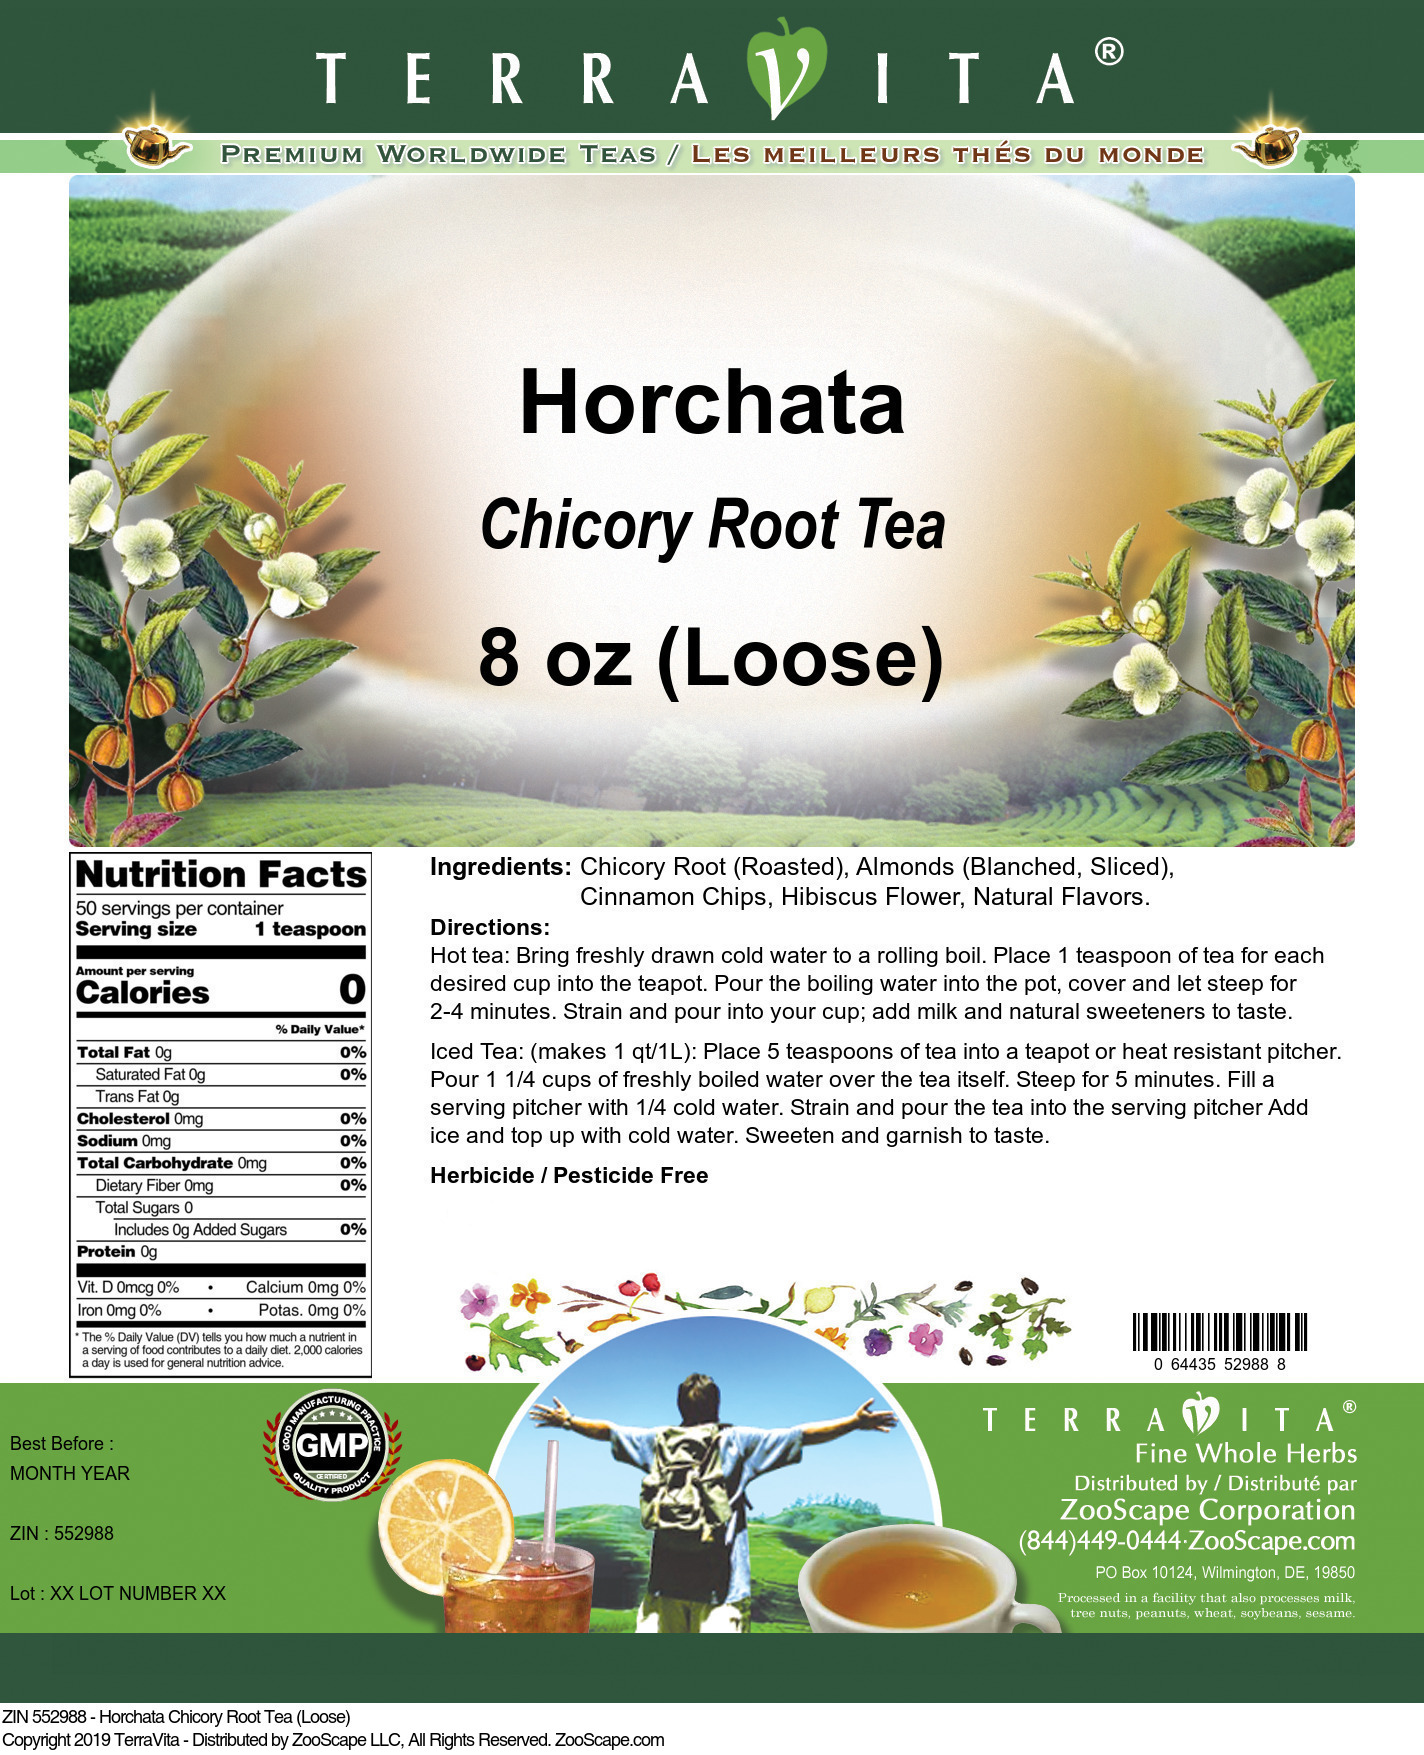 Horchata Chicory Root Tea (Loose)